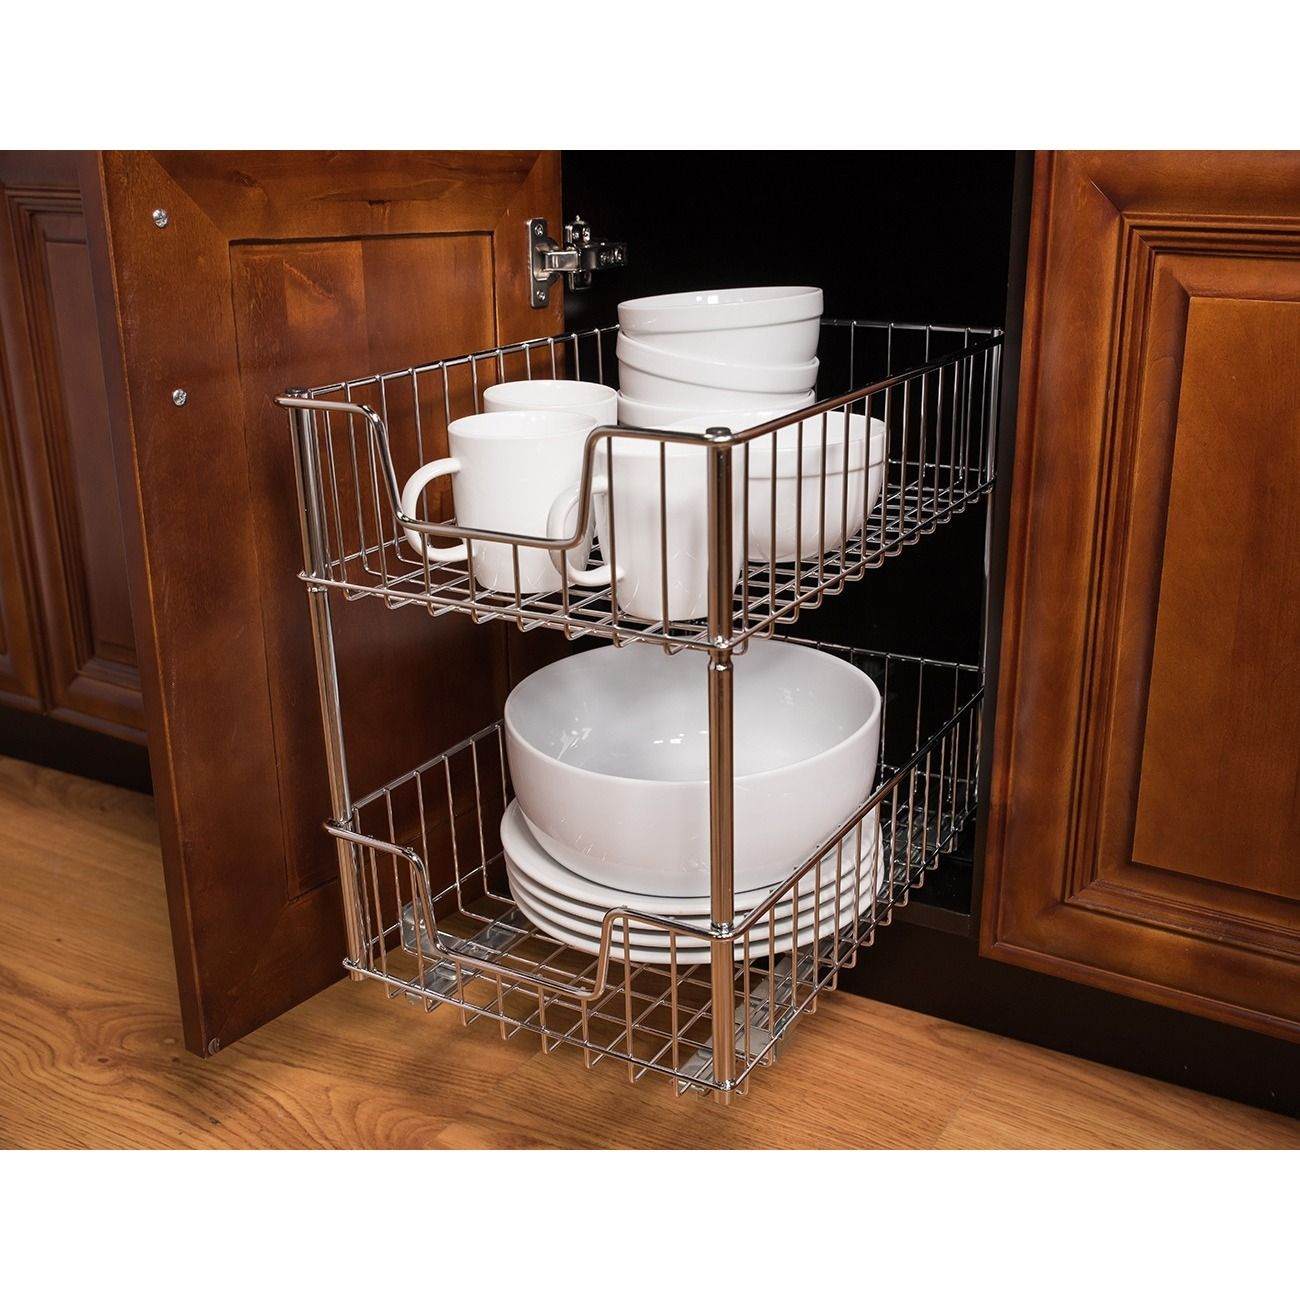 Small kitchen table and 2 chairs  Trinity EcoStorage tier Wire Drawers Trinity EcoStorage Tier